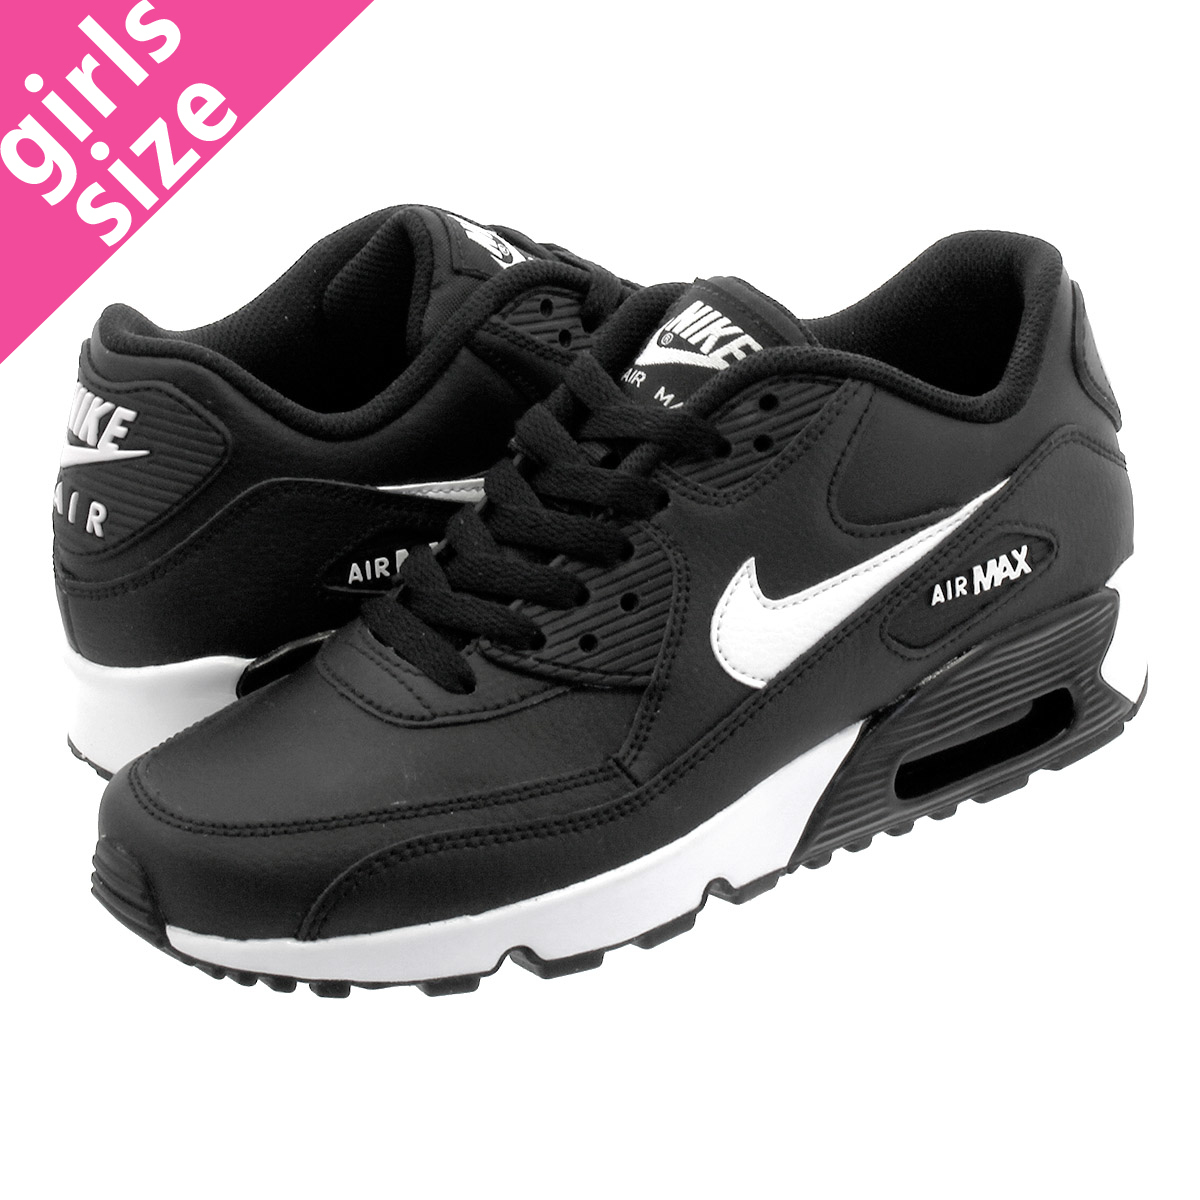 894e5bac0 Unisex Shoes Nike Air Max 90 Leather GS   833376 602 Elemental Rose Big Kids  SZ ...